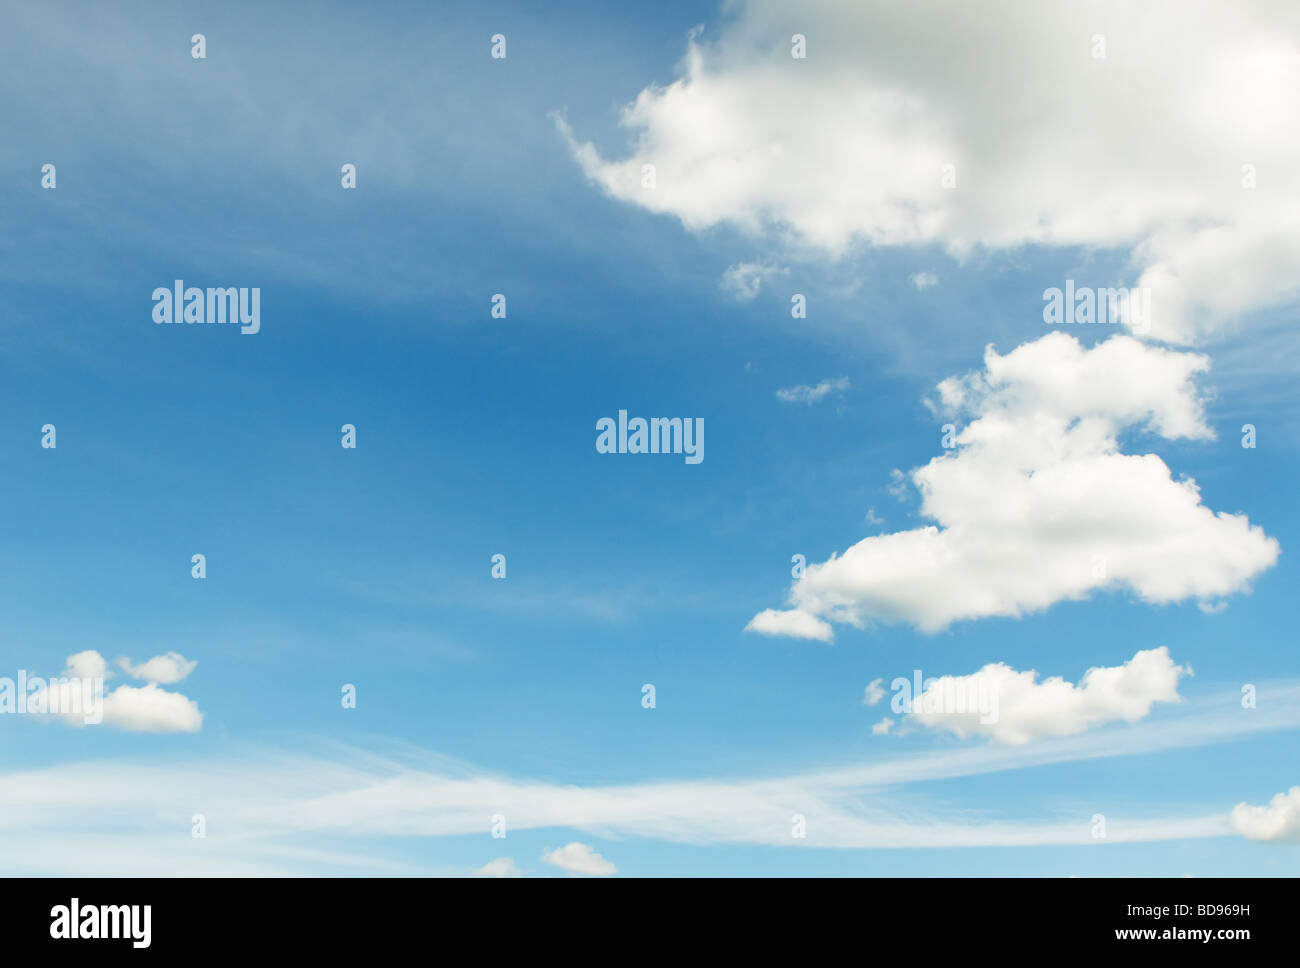 white clouds over deep blue sky background - Stock Image